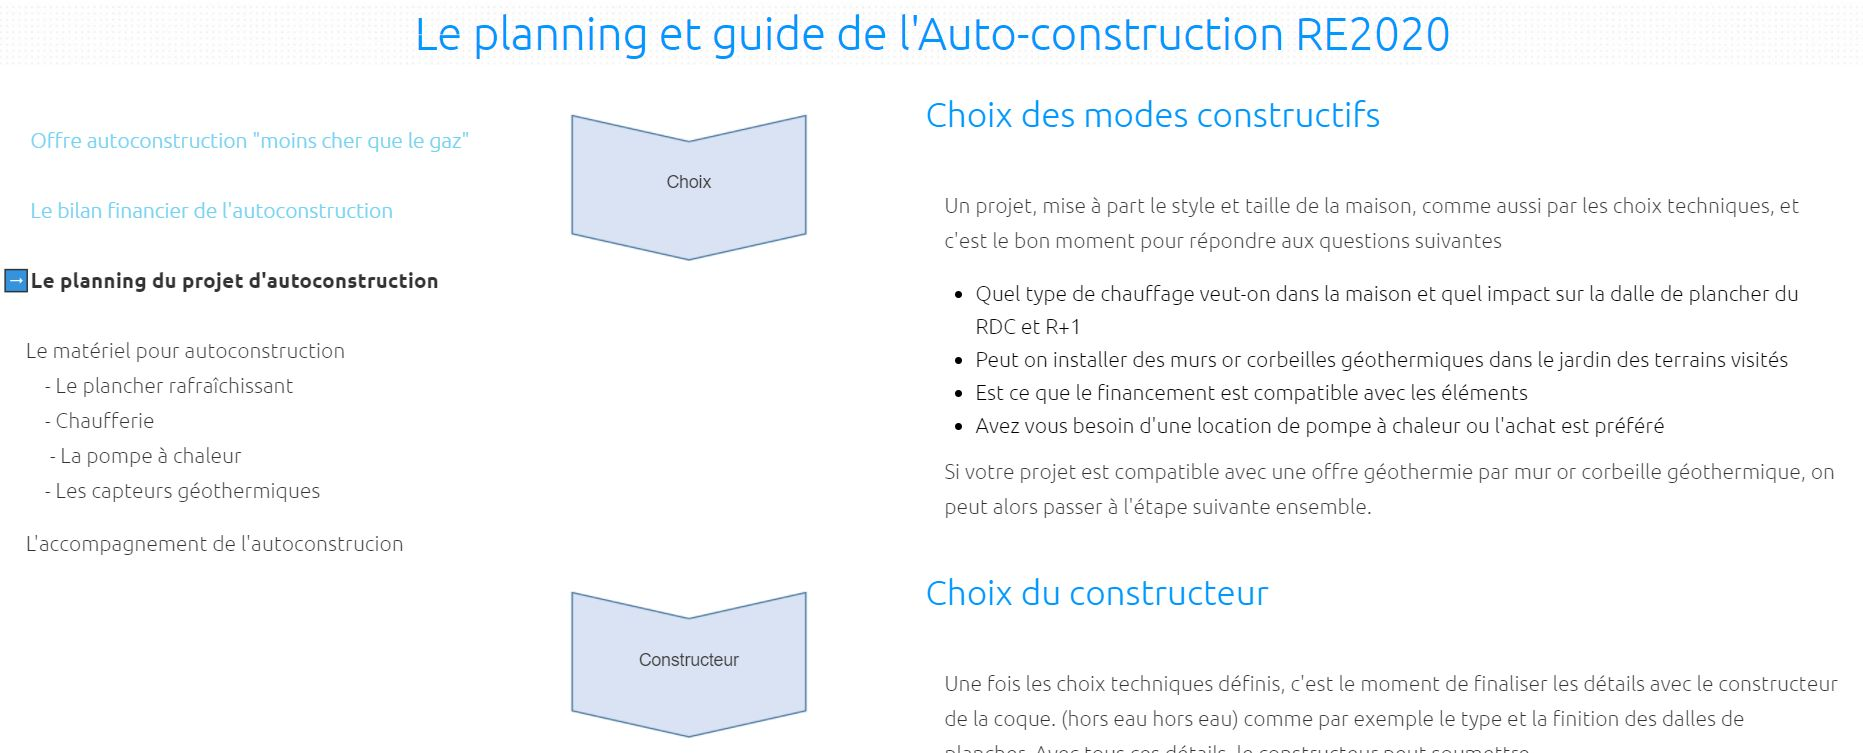 Guides pour autoconstruction RE2020